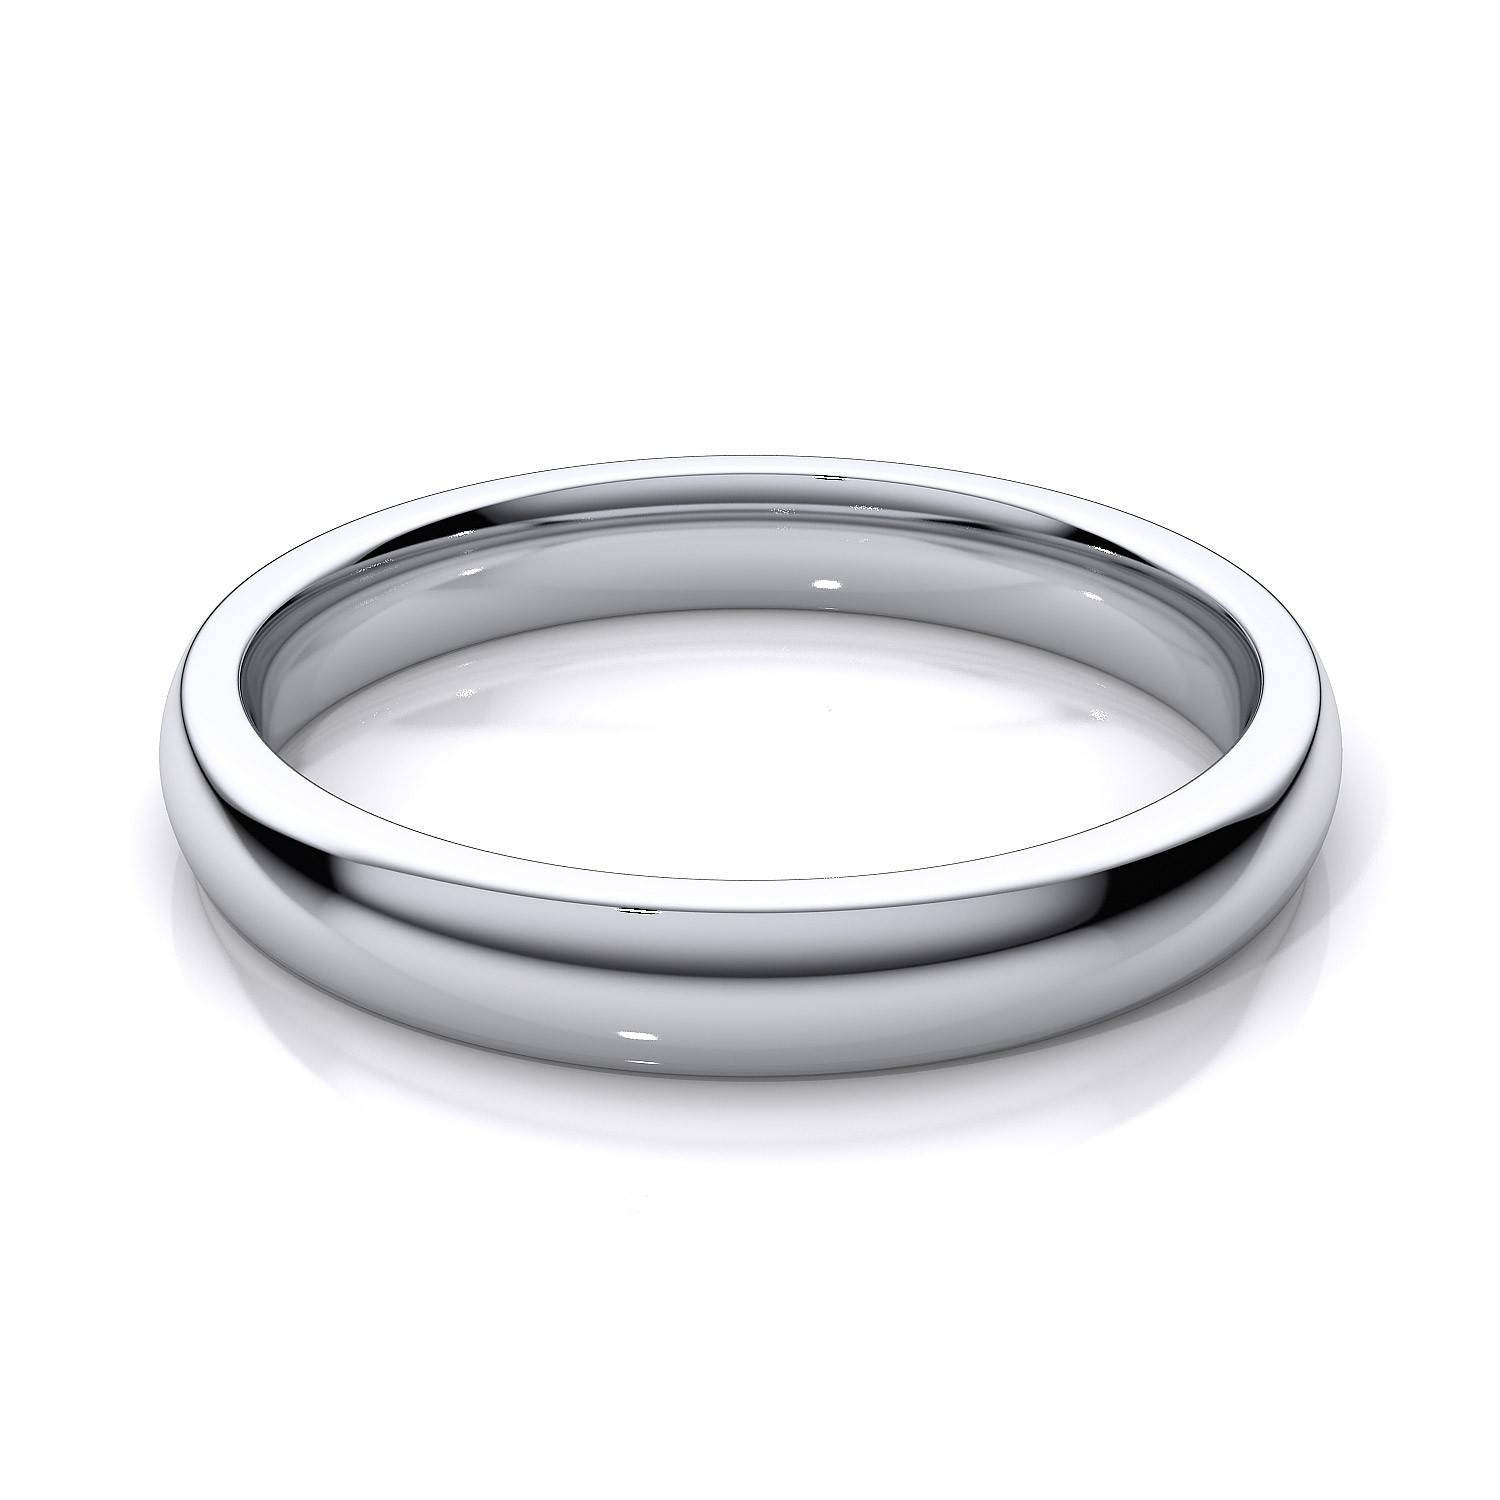 3Mm Women's Comfort Fit Plain Wedding Band In 14K White Gold Regarding White Gold Plain Wedding Bands (View 3 of 15)